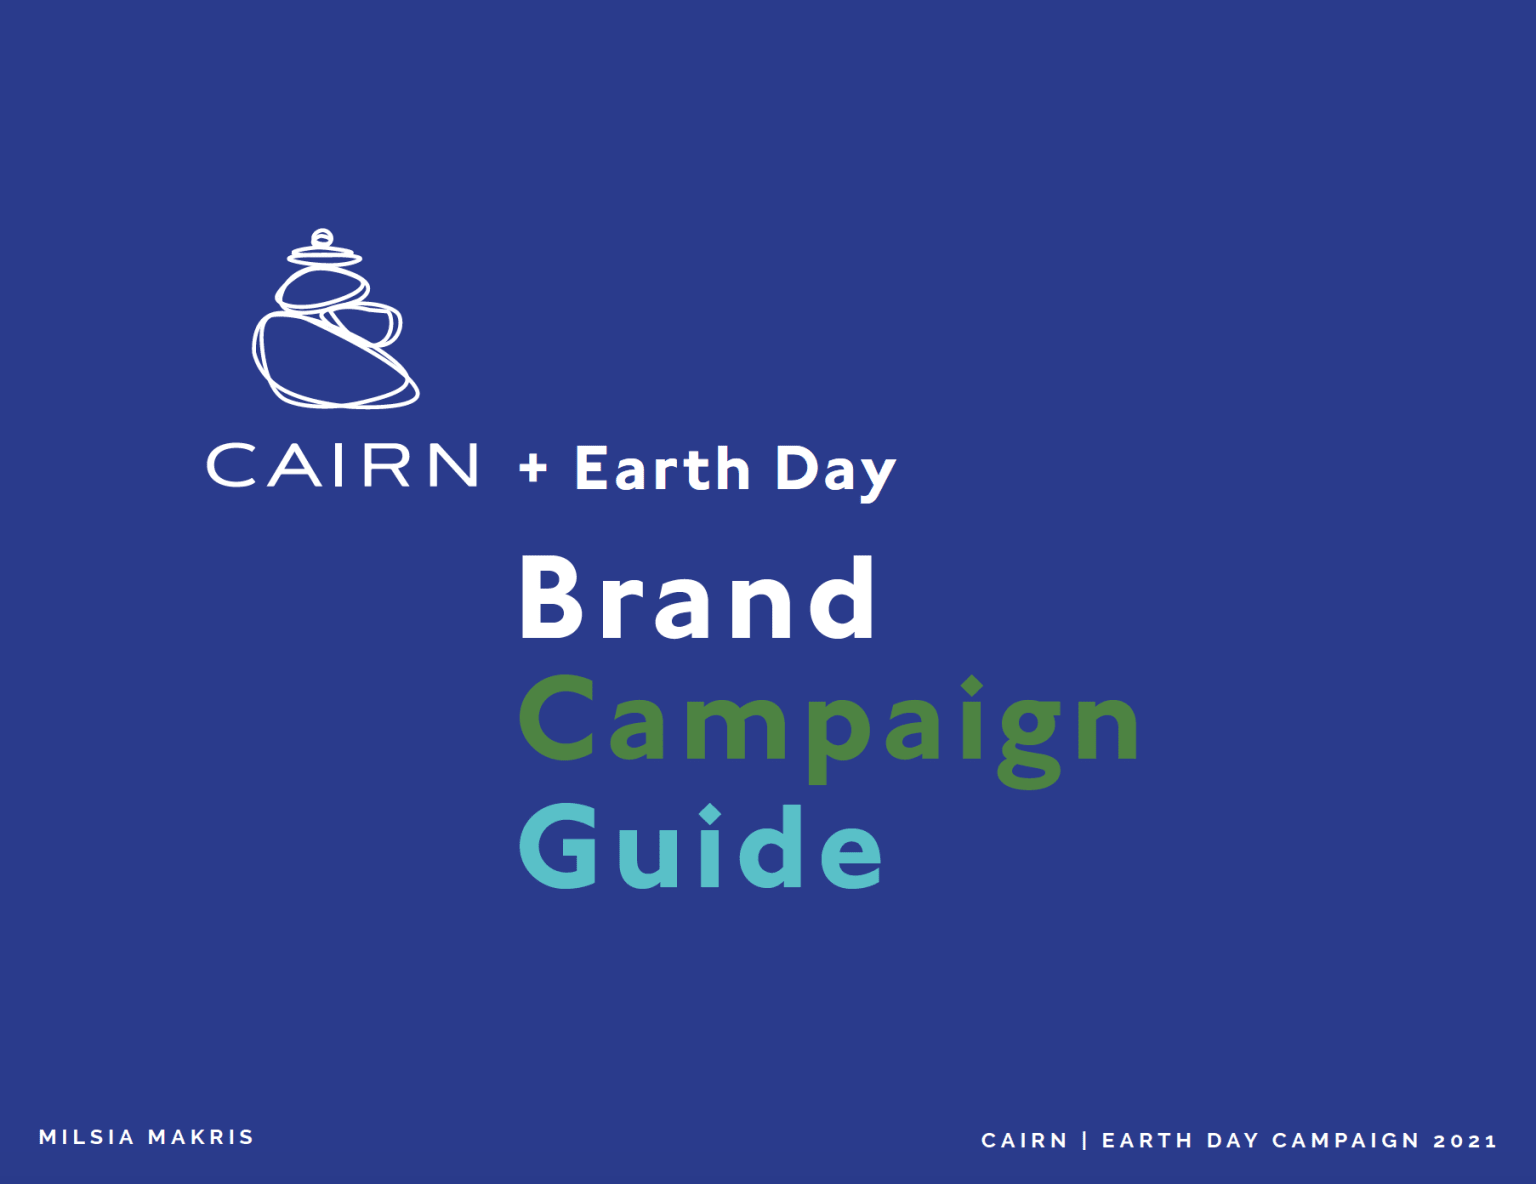 CAIRN + Earth Day Pitch Deck